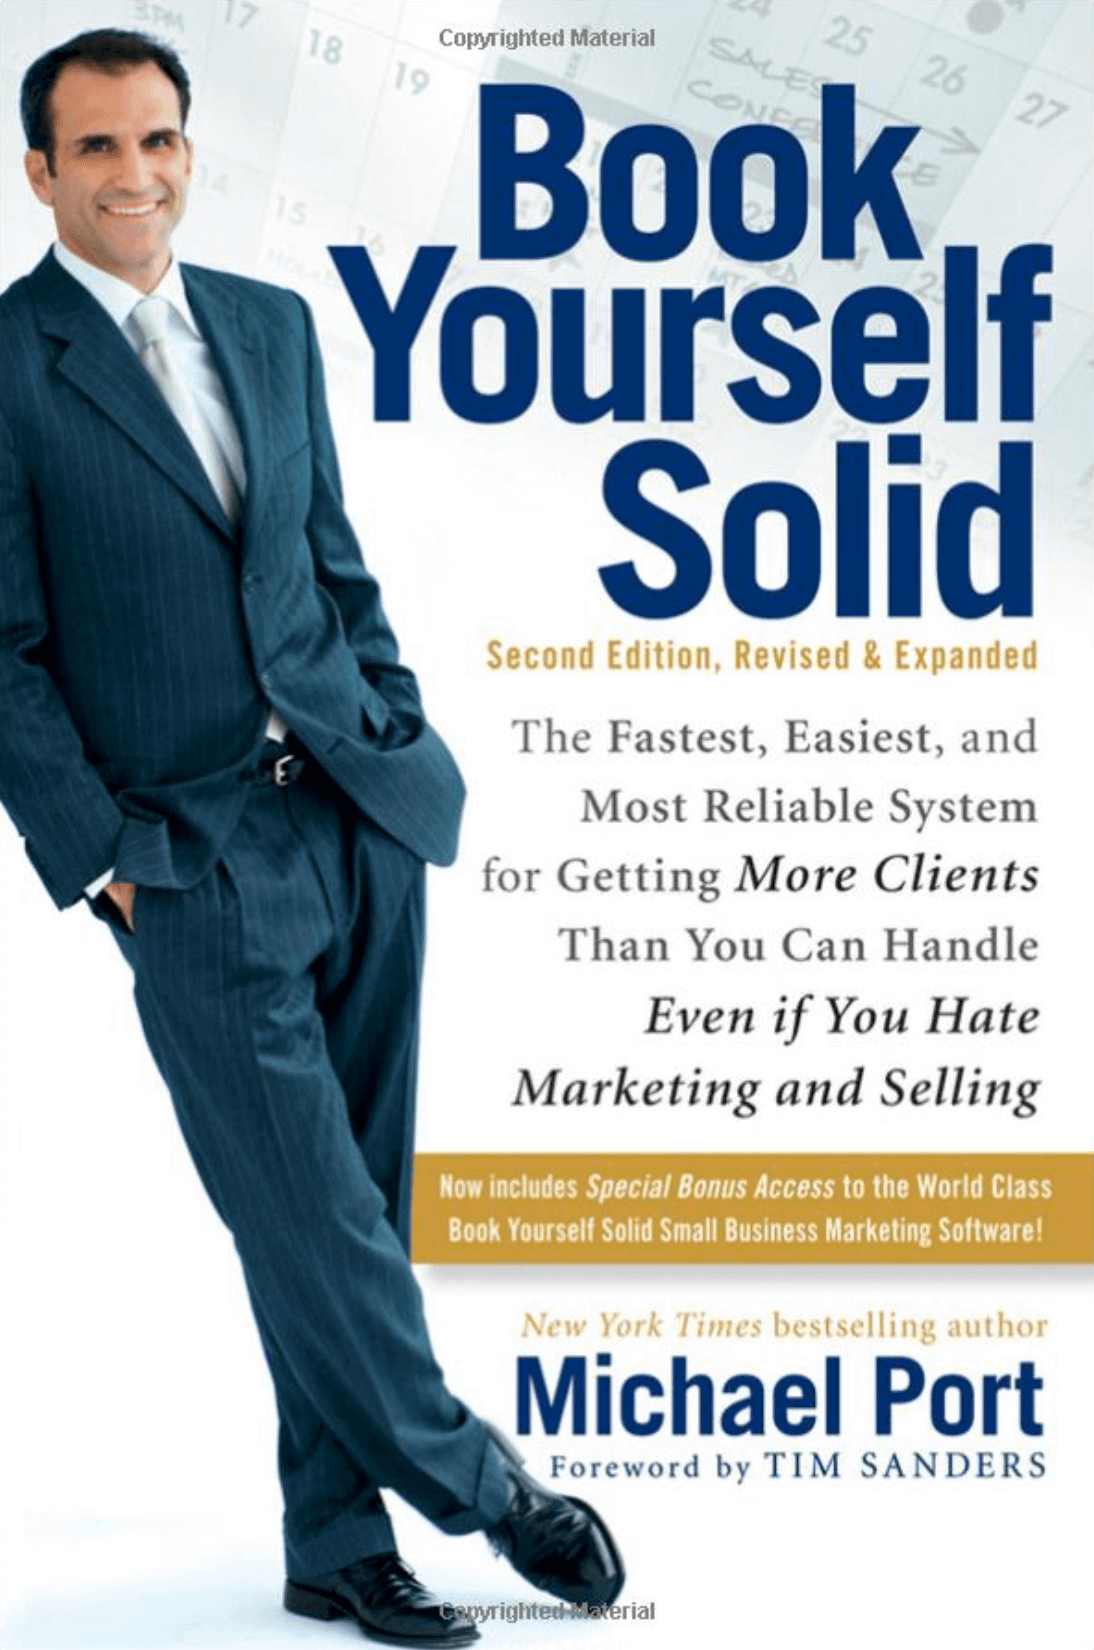 """Book Yourself Solid: The Fastest, Easiest, and Most Reliable System for Getting More Clients Than You Can Handle Even if You Hate Marketing and Selling"" by Michael Port_Saleslabel.com"